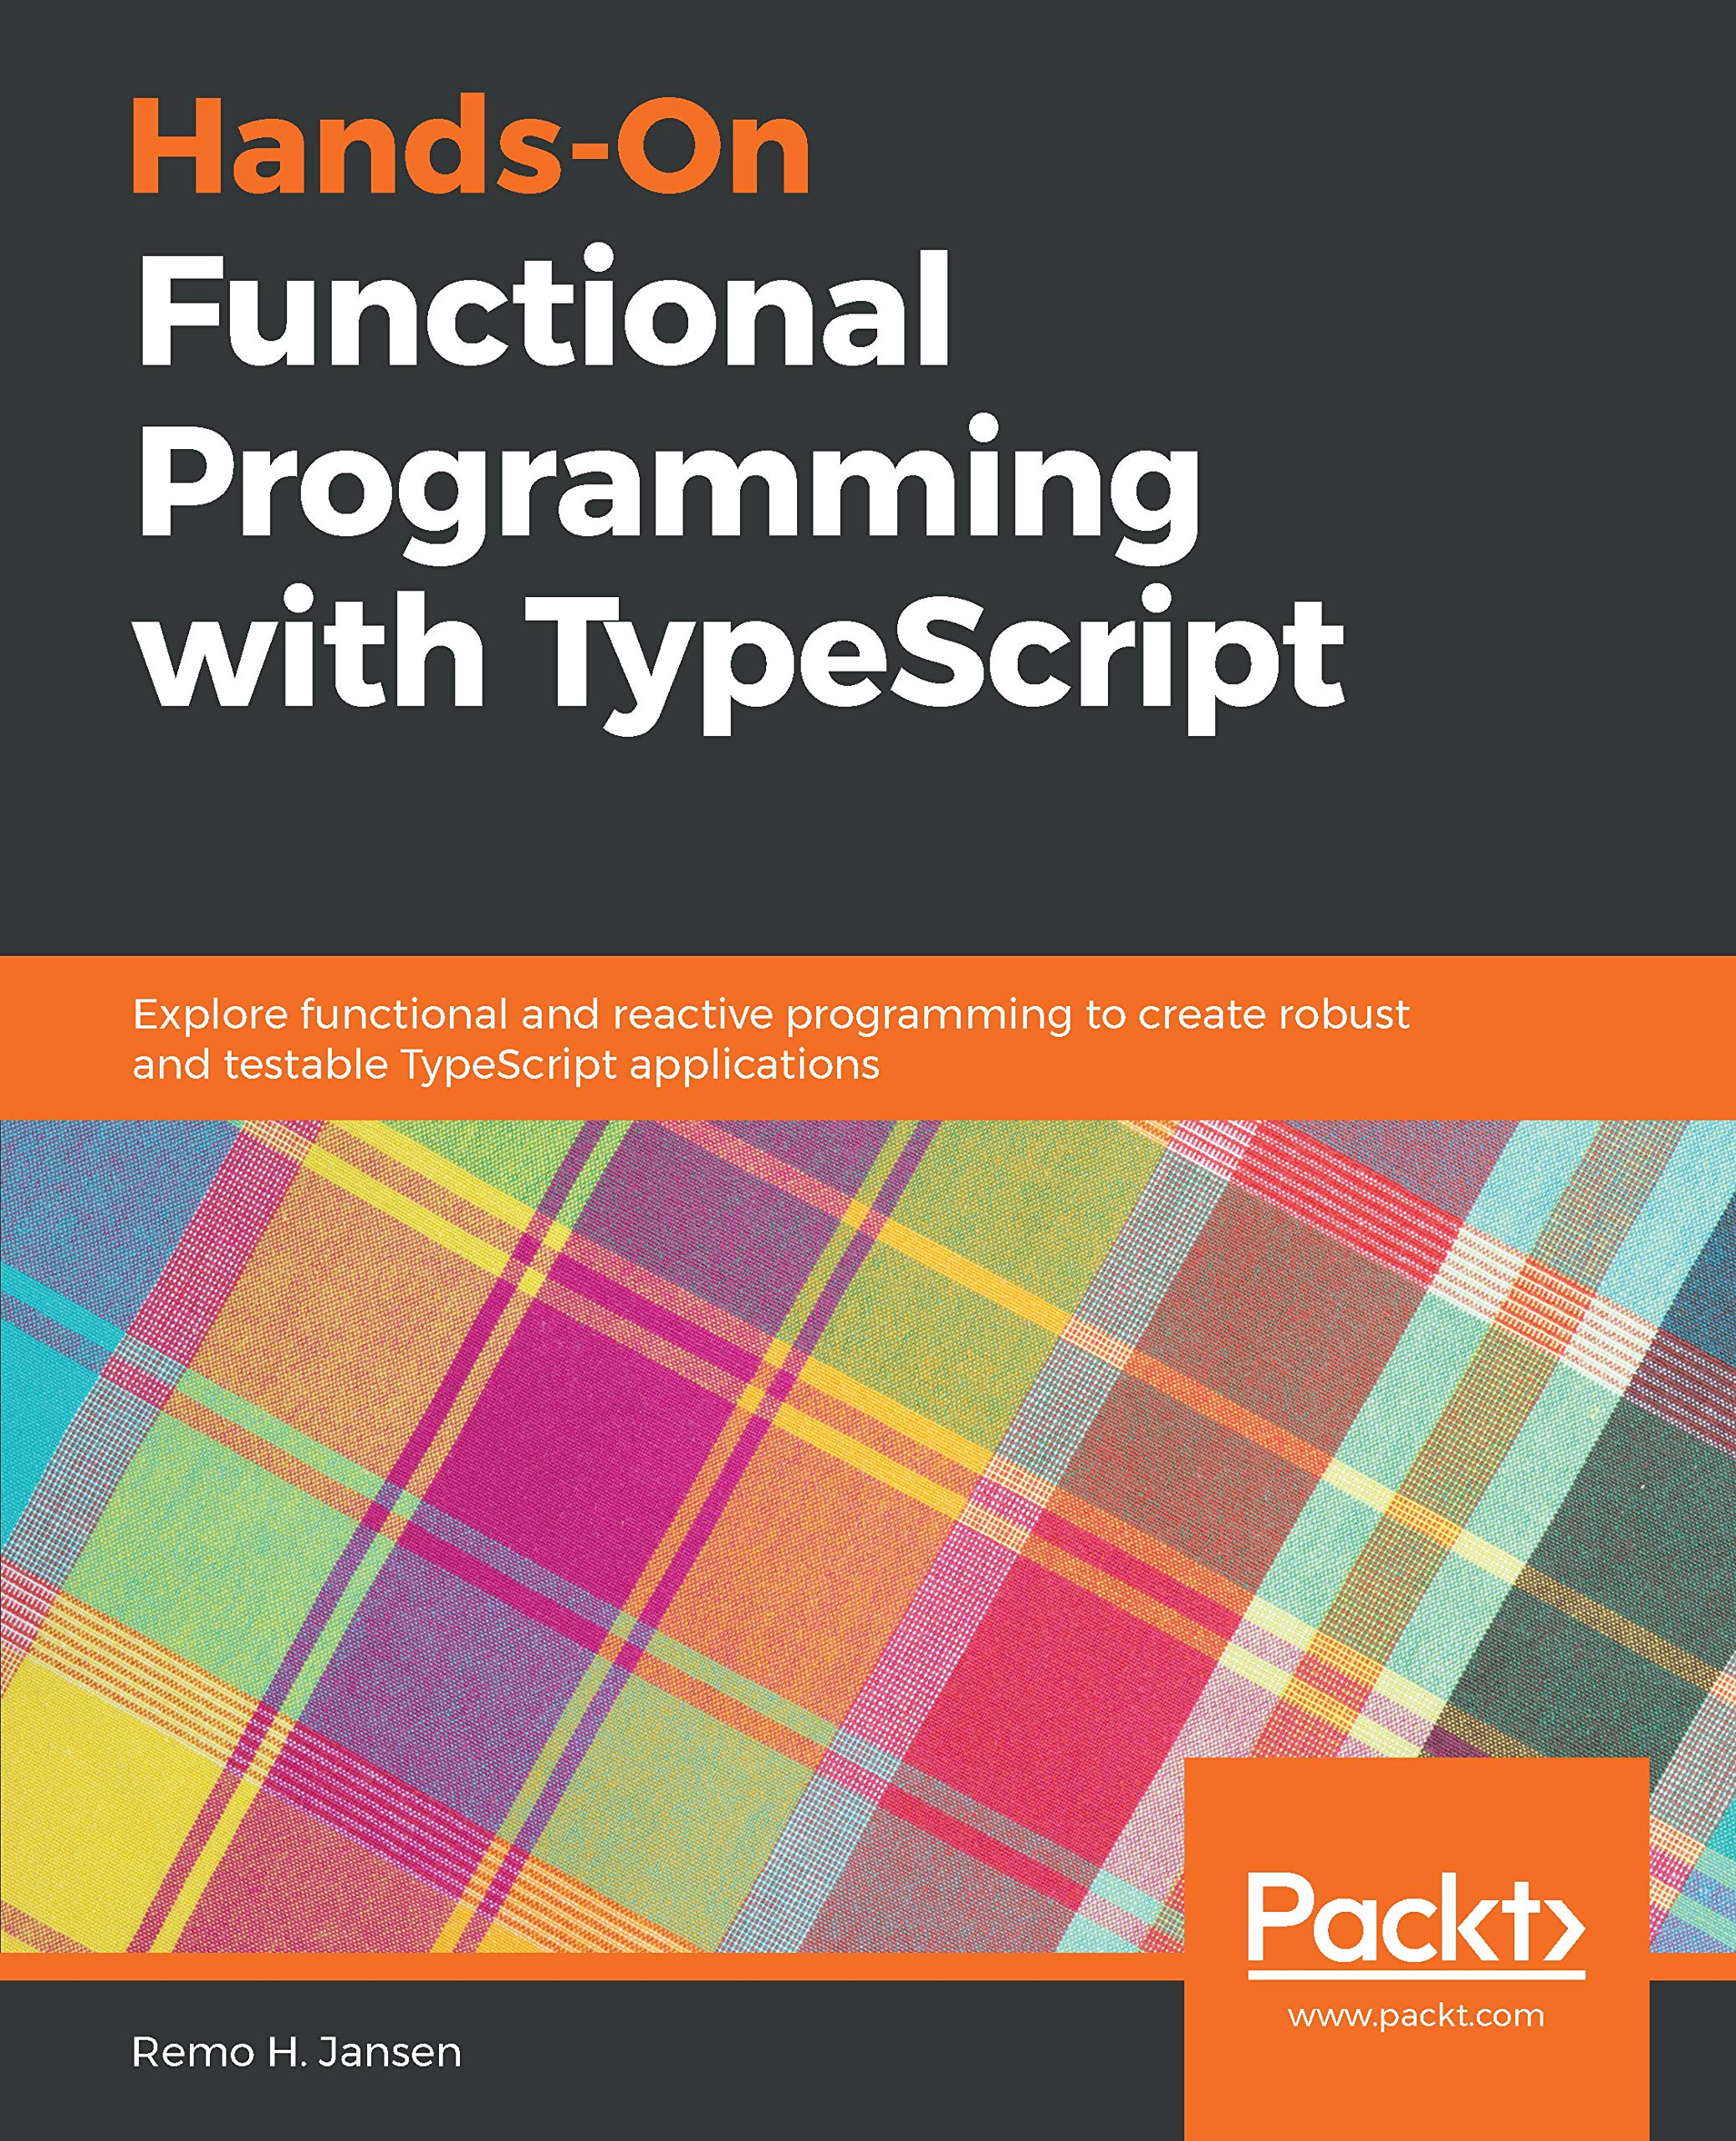 Hands-On Functional Programming with TypeScript: Explore functional and reactive programming to create robust and testable TypeScript applications